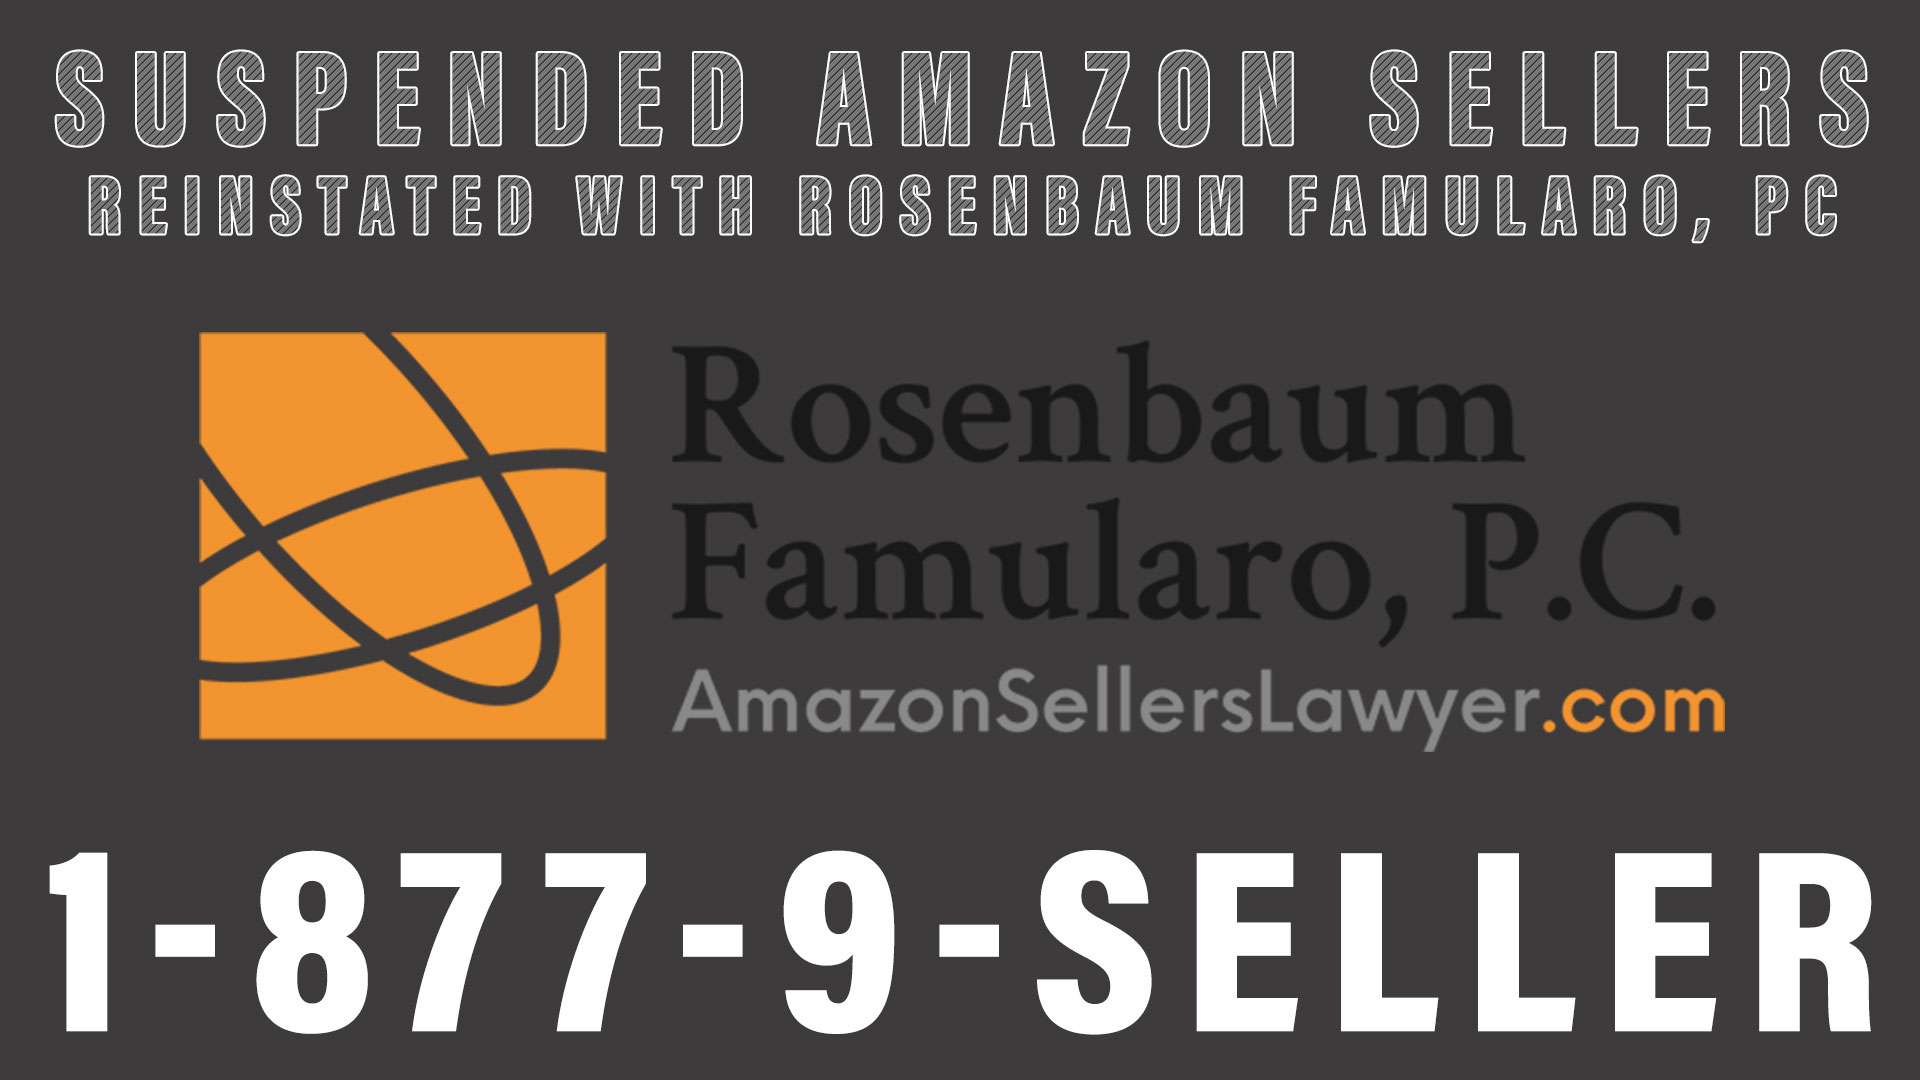 suspended Amazon sellers reinstated